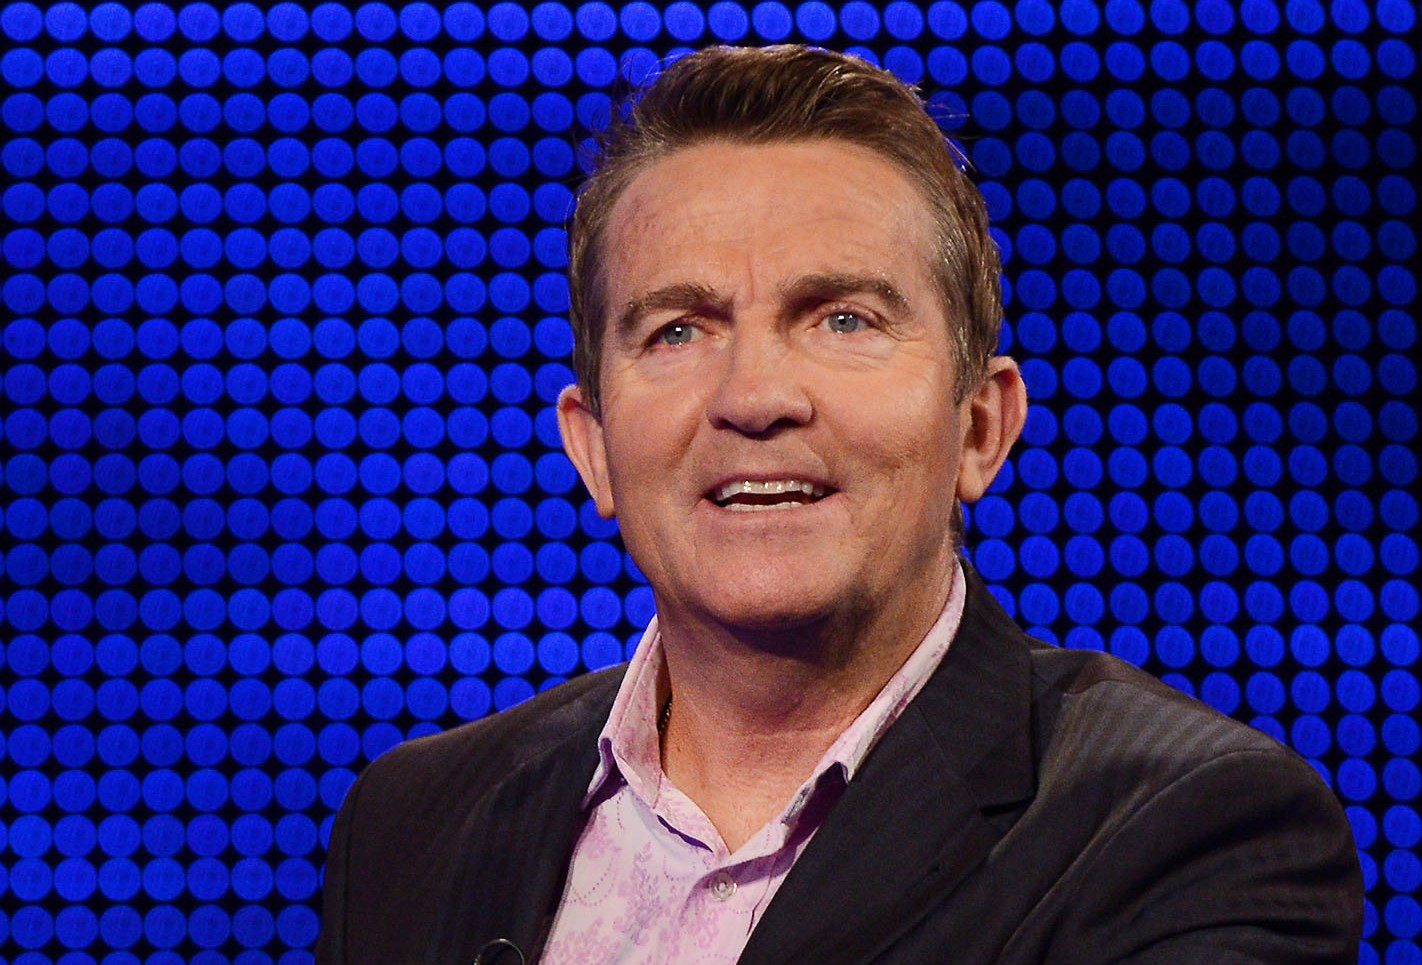 Bradley Walsh's 60th birthday to be celebrated with special ITV show